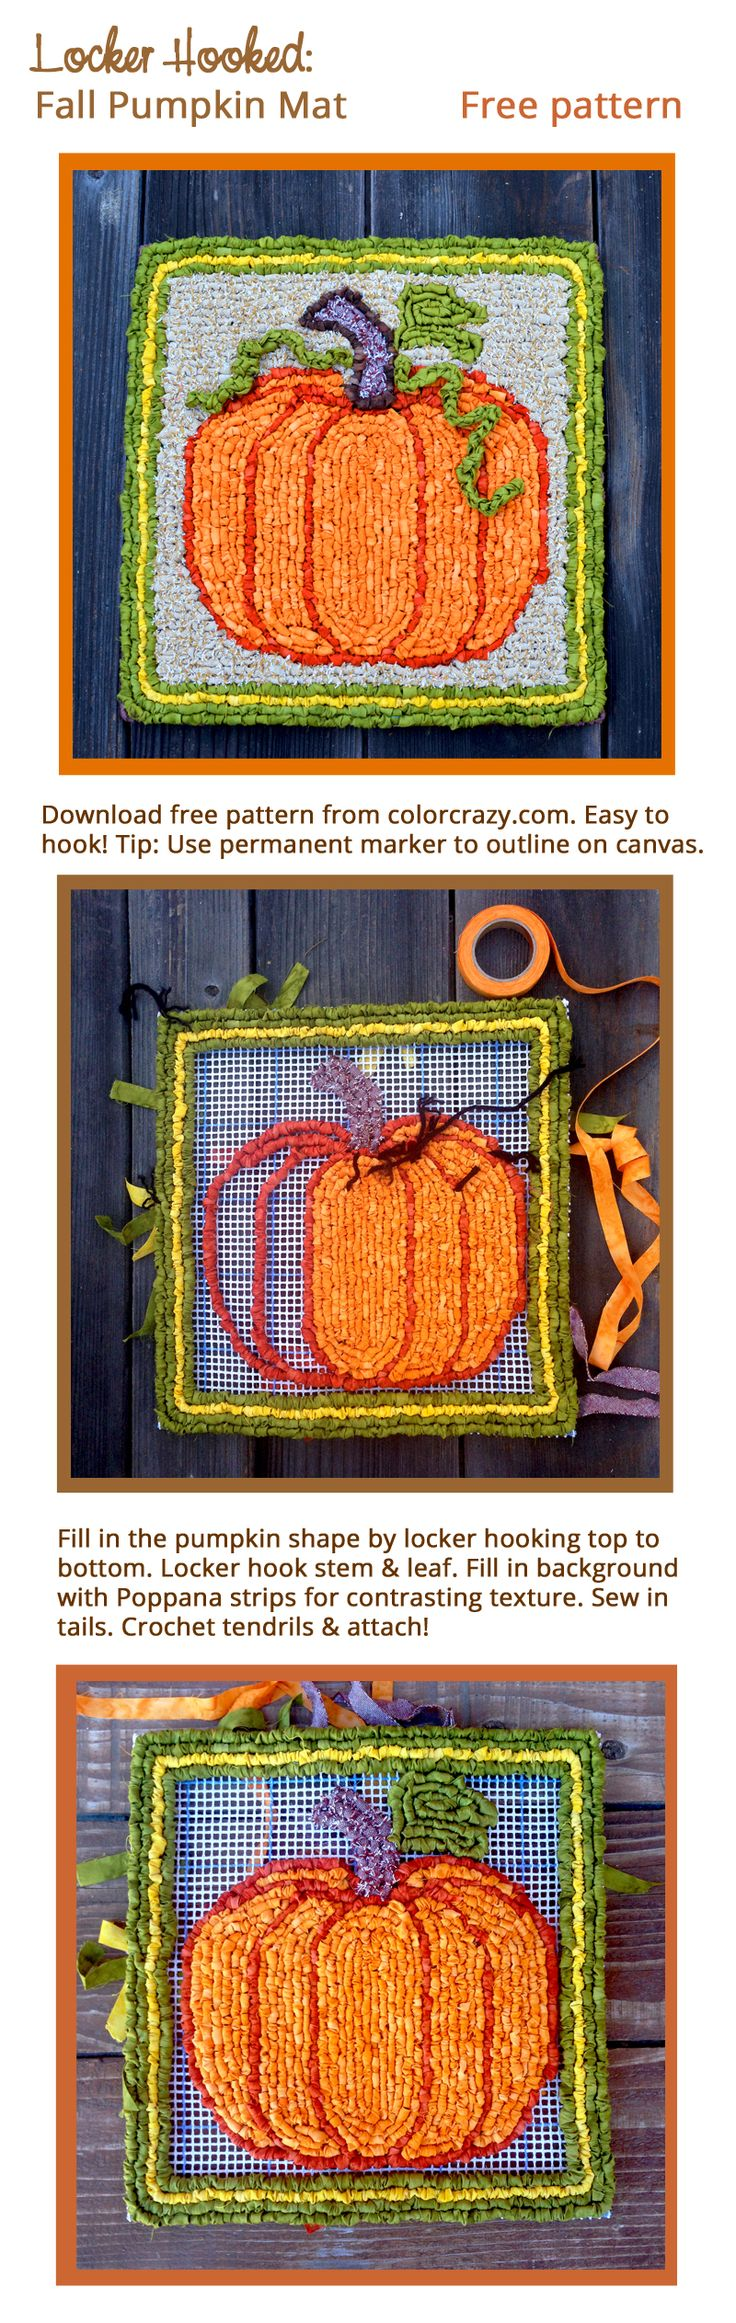 Locker Hooked Fall Pumpkin Mat - Free pattern from Colorcrazy.com.